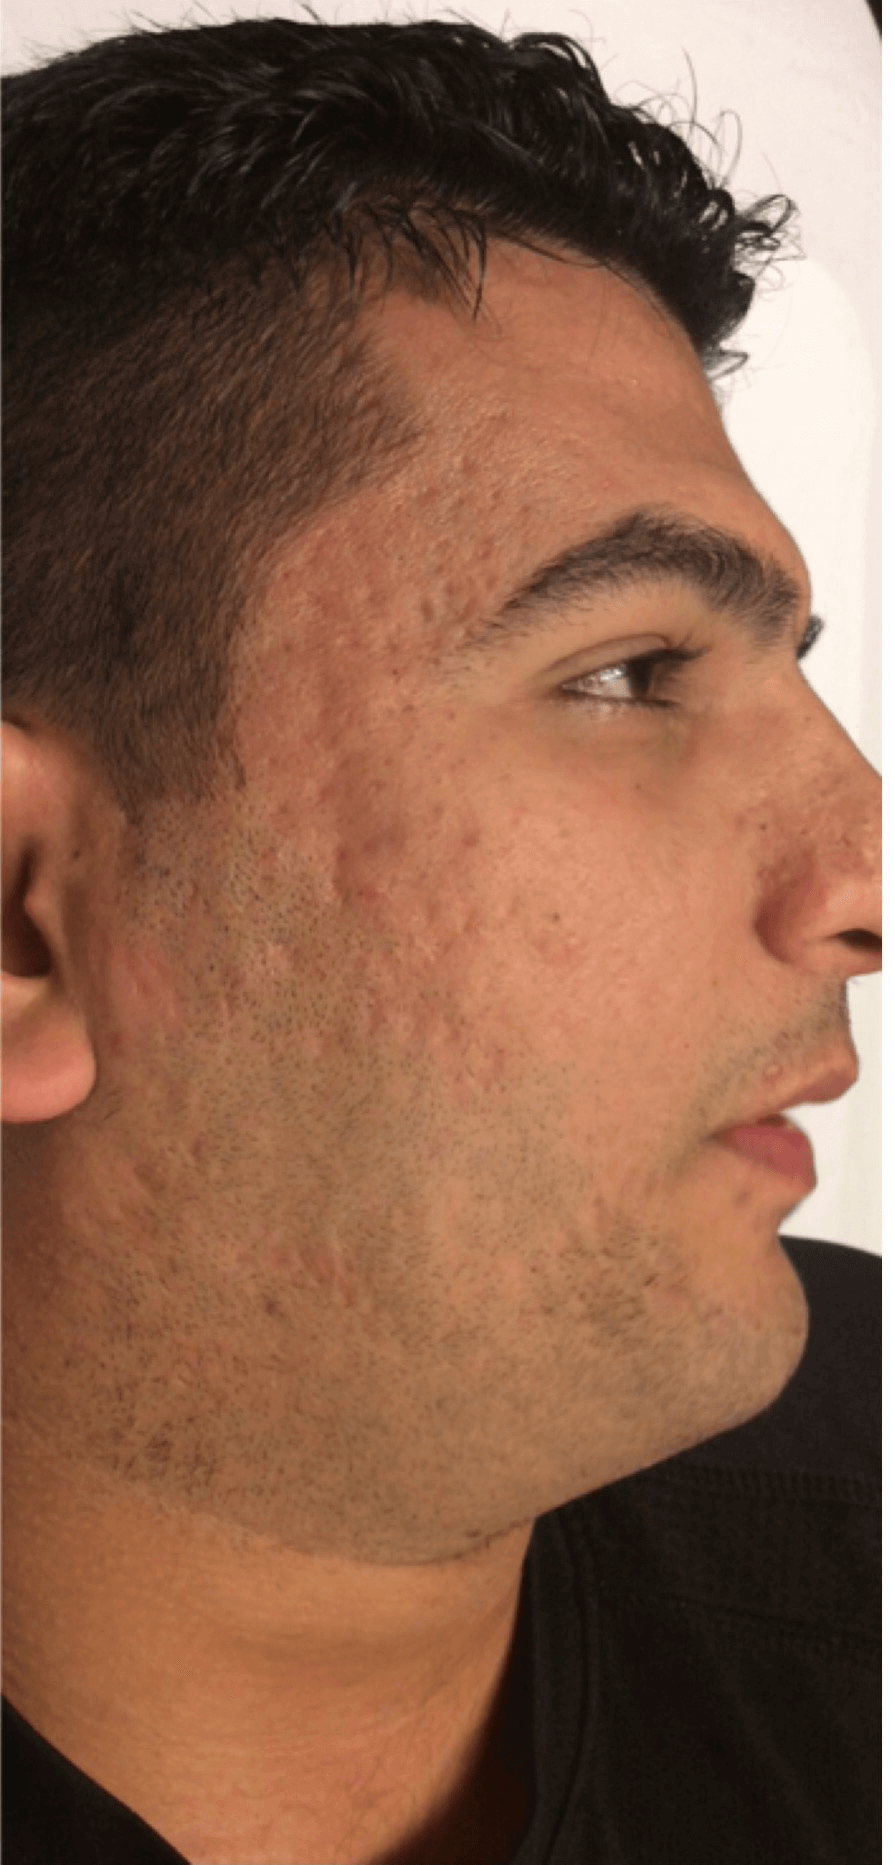 Treatment for Acne Scars After